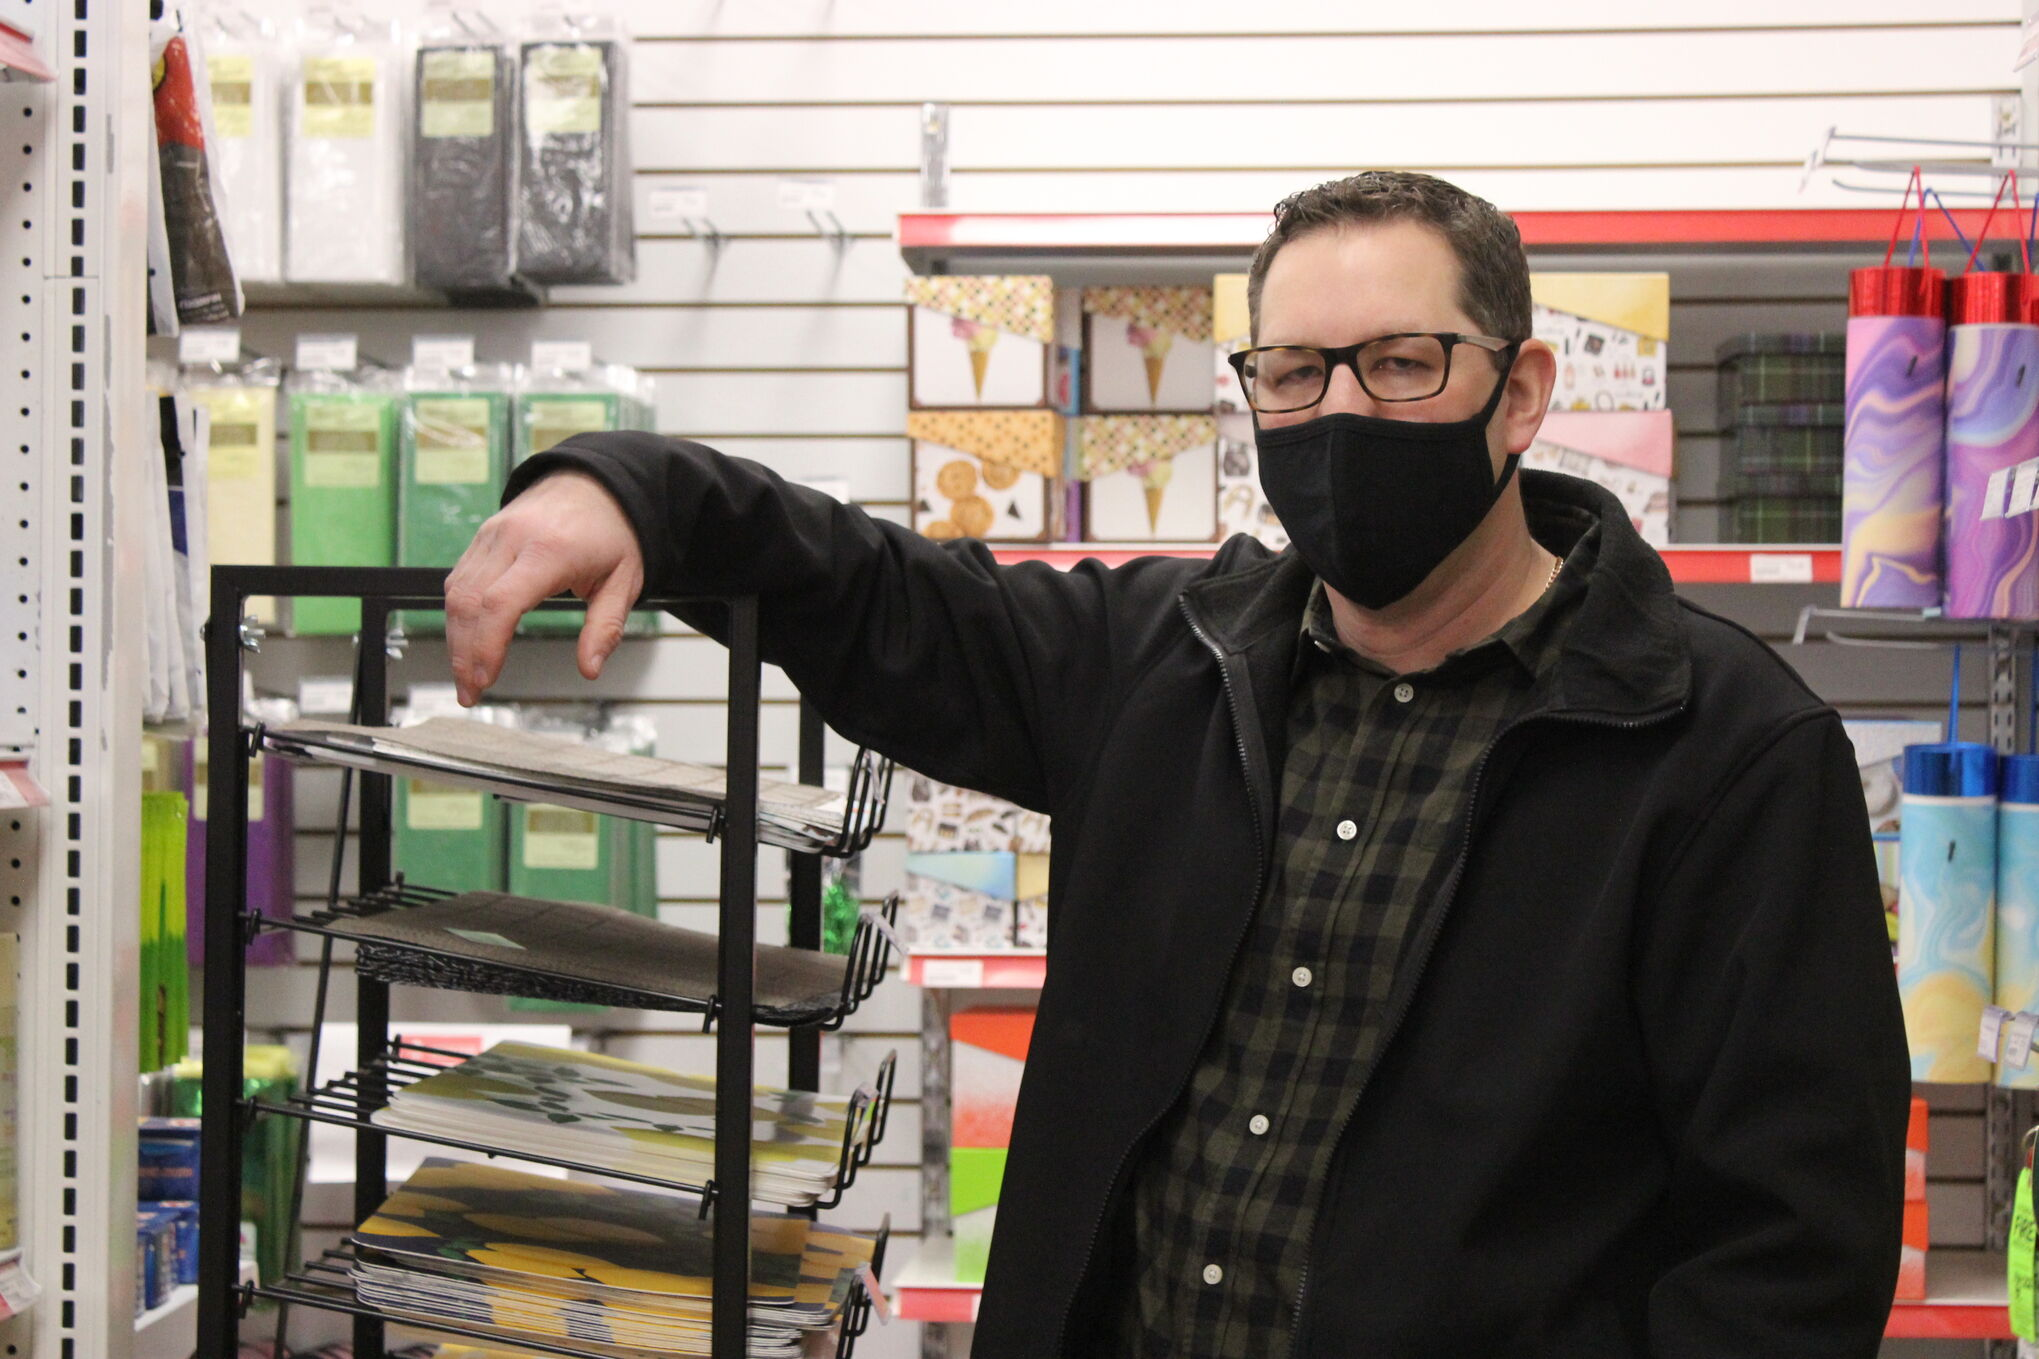 """Travis Neufeld, owner of Great Canadian Dollar Store in Steinbach and Niverville, says the breakdown of the thousands of retail items sold in Manitoba as """"essential"""" or """"non-essential"""" is excessive, confounds business owners, and impedes sales. He said $5,000 fines and the lack of an appeal method are disproportionately harsh compared to how vague the essential items list is for inspectors, which give him mixed messages."""